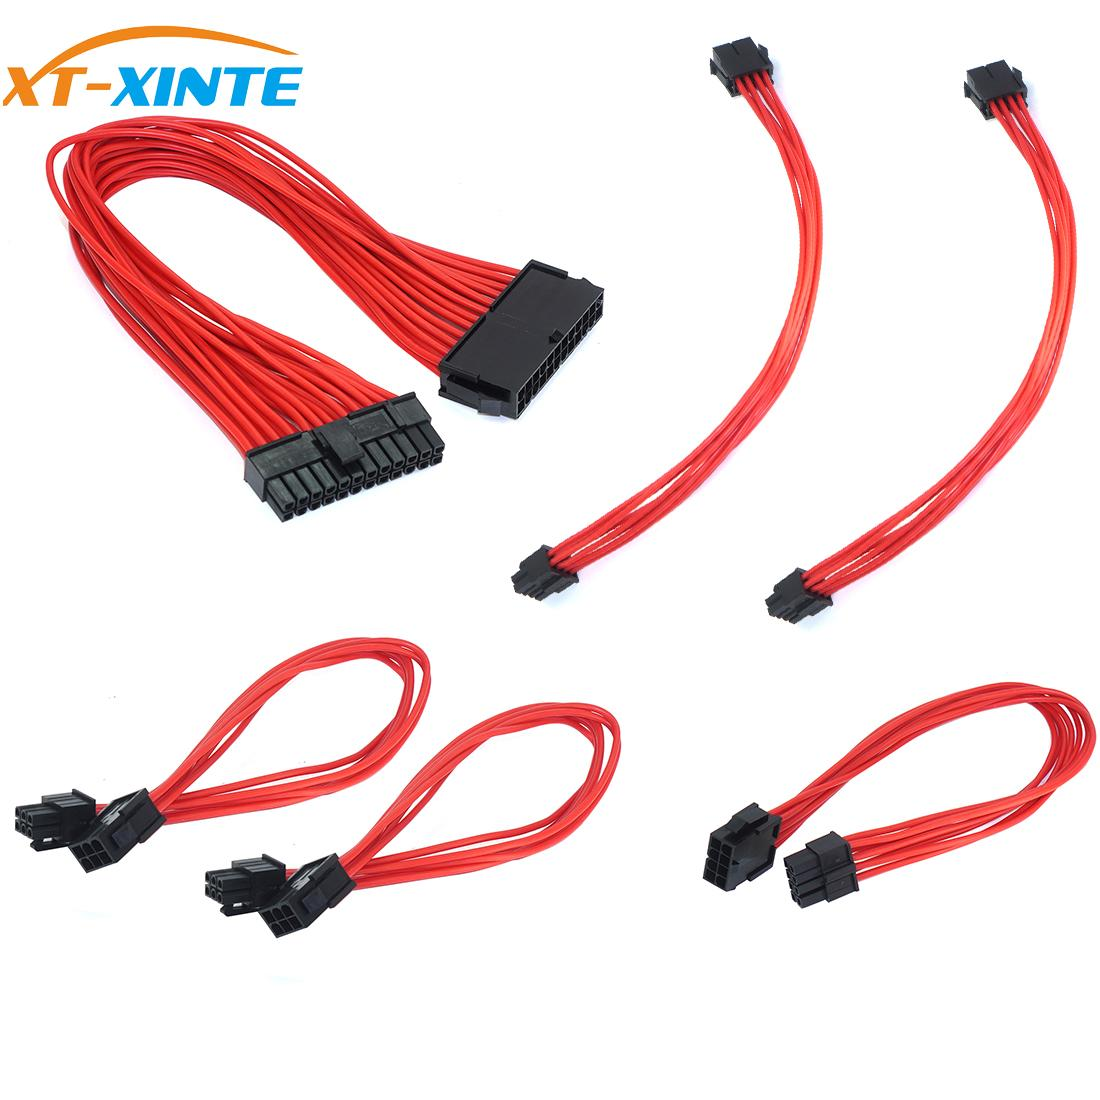 1 Set Basic <font><b>Extension</b></font> <font><b>Cable</b></font> Kit ATX <font><b>24Pin</b></font>/ EPS 4+4Pin / PCI-E 6+2Pin/ PCI-E 6Pin Power <font><b>Extension</b></font> Power <font><b>Cable</b></font> for PC Computer image